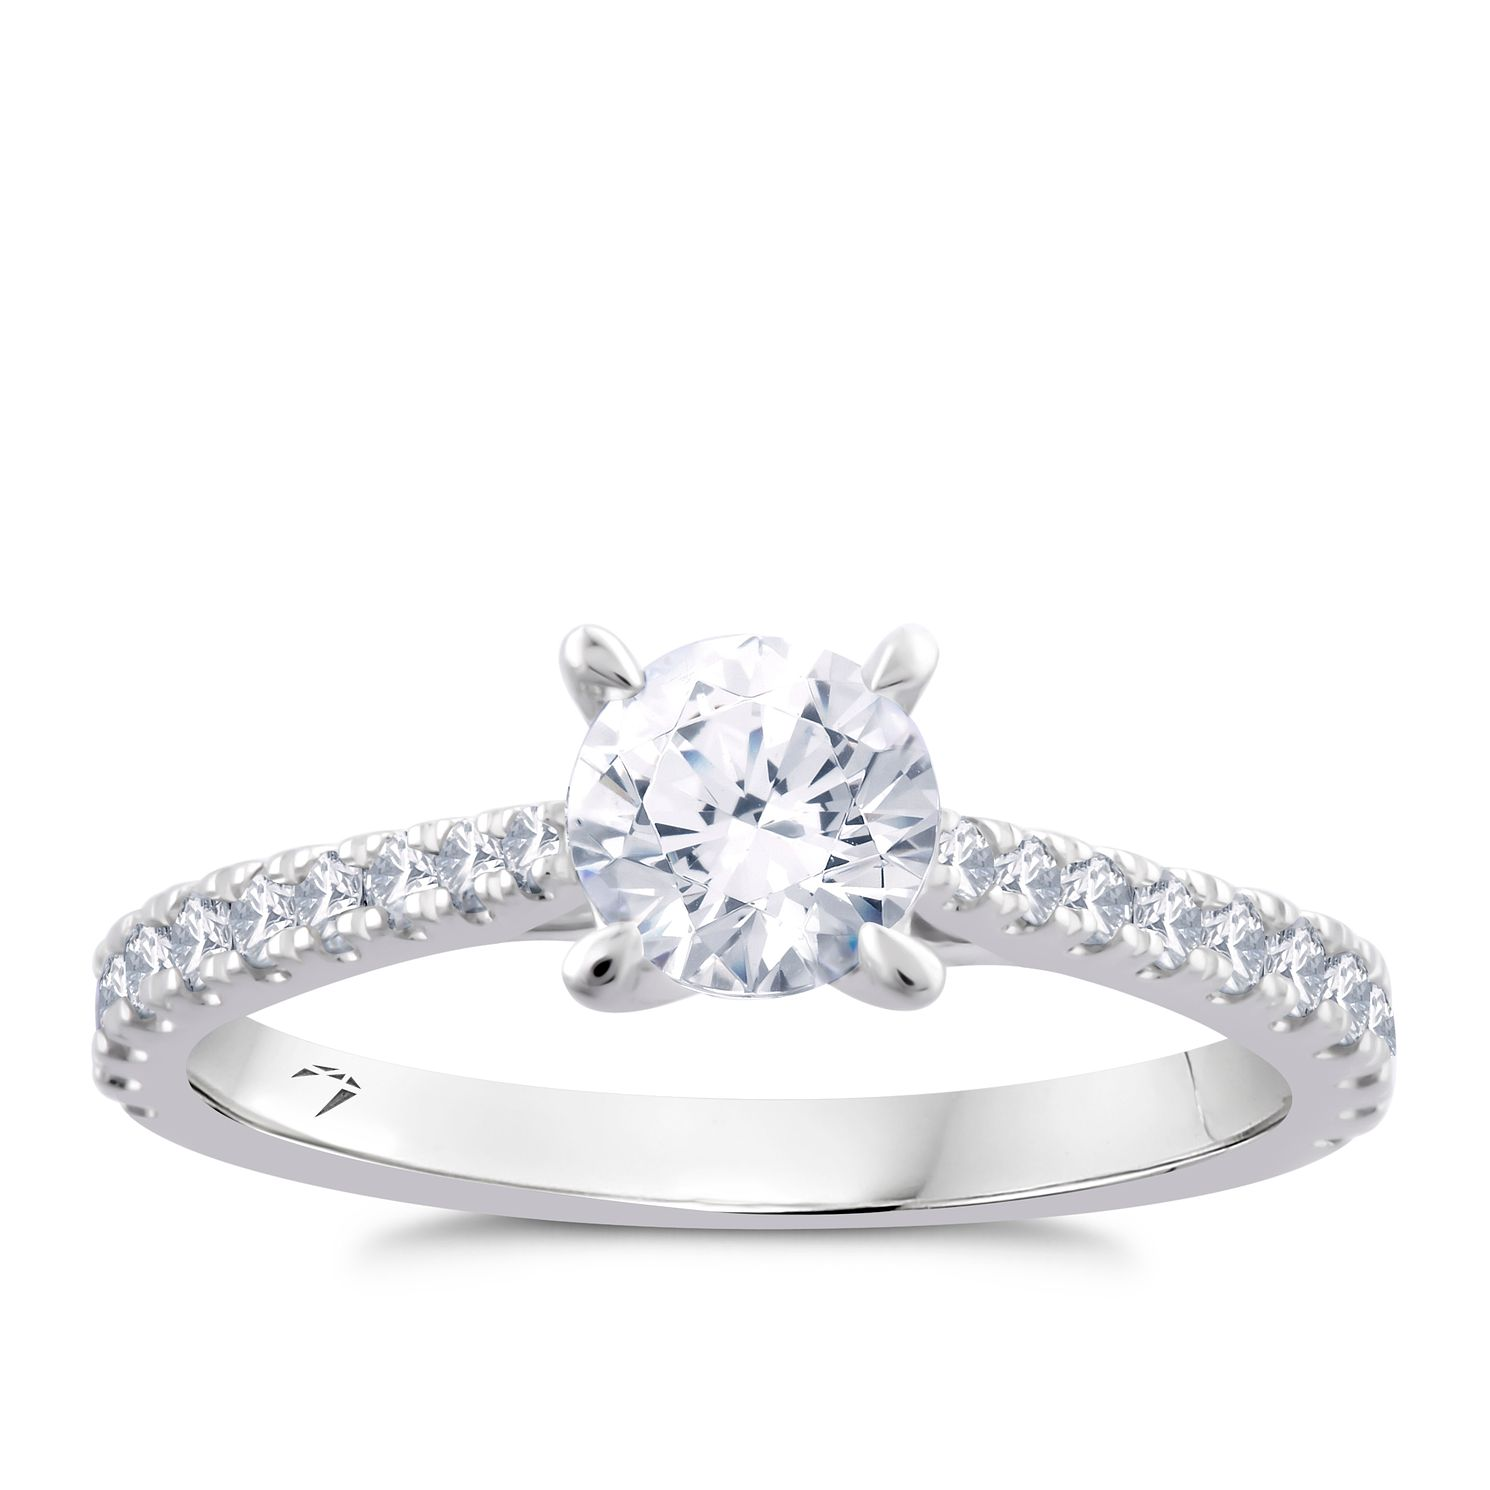 Arctic Light Platinum 1ct Diamond Ring - Product number 5926629